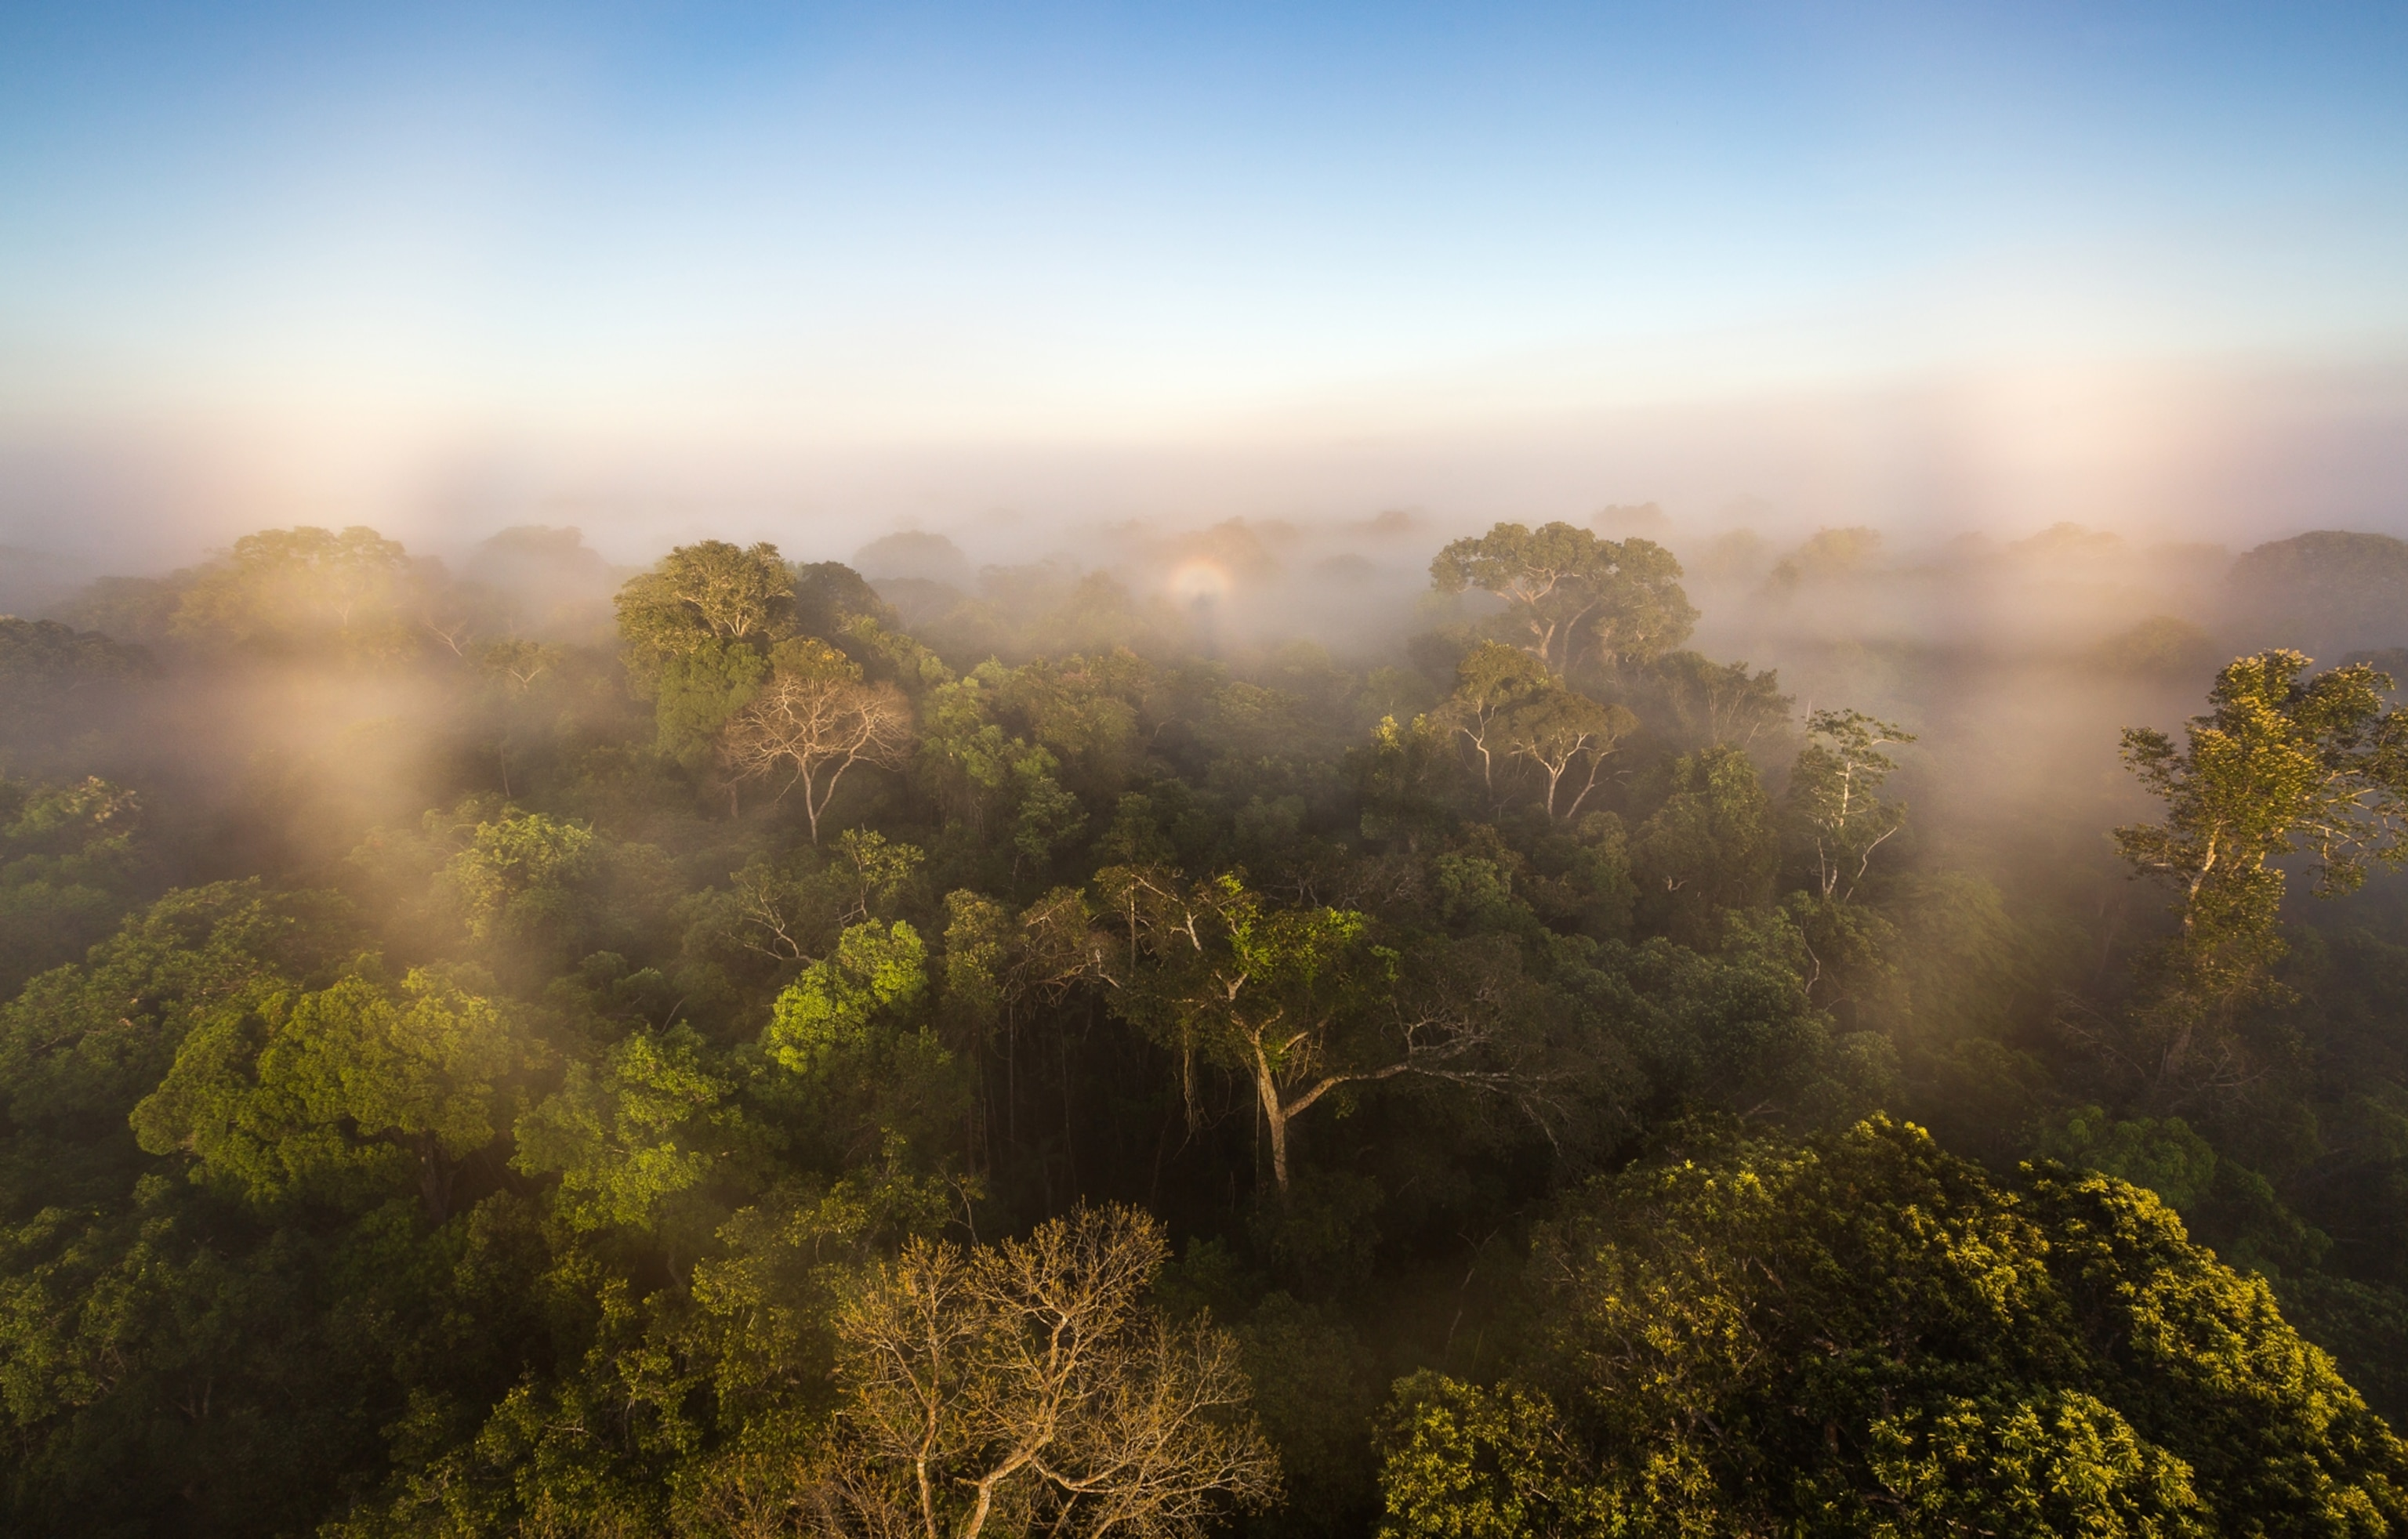 First study of all Amazon greenhouse gases suggests the damaged forest is now worsening climate change